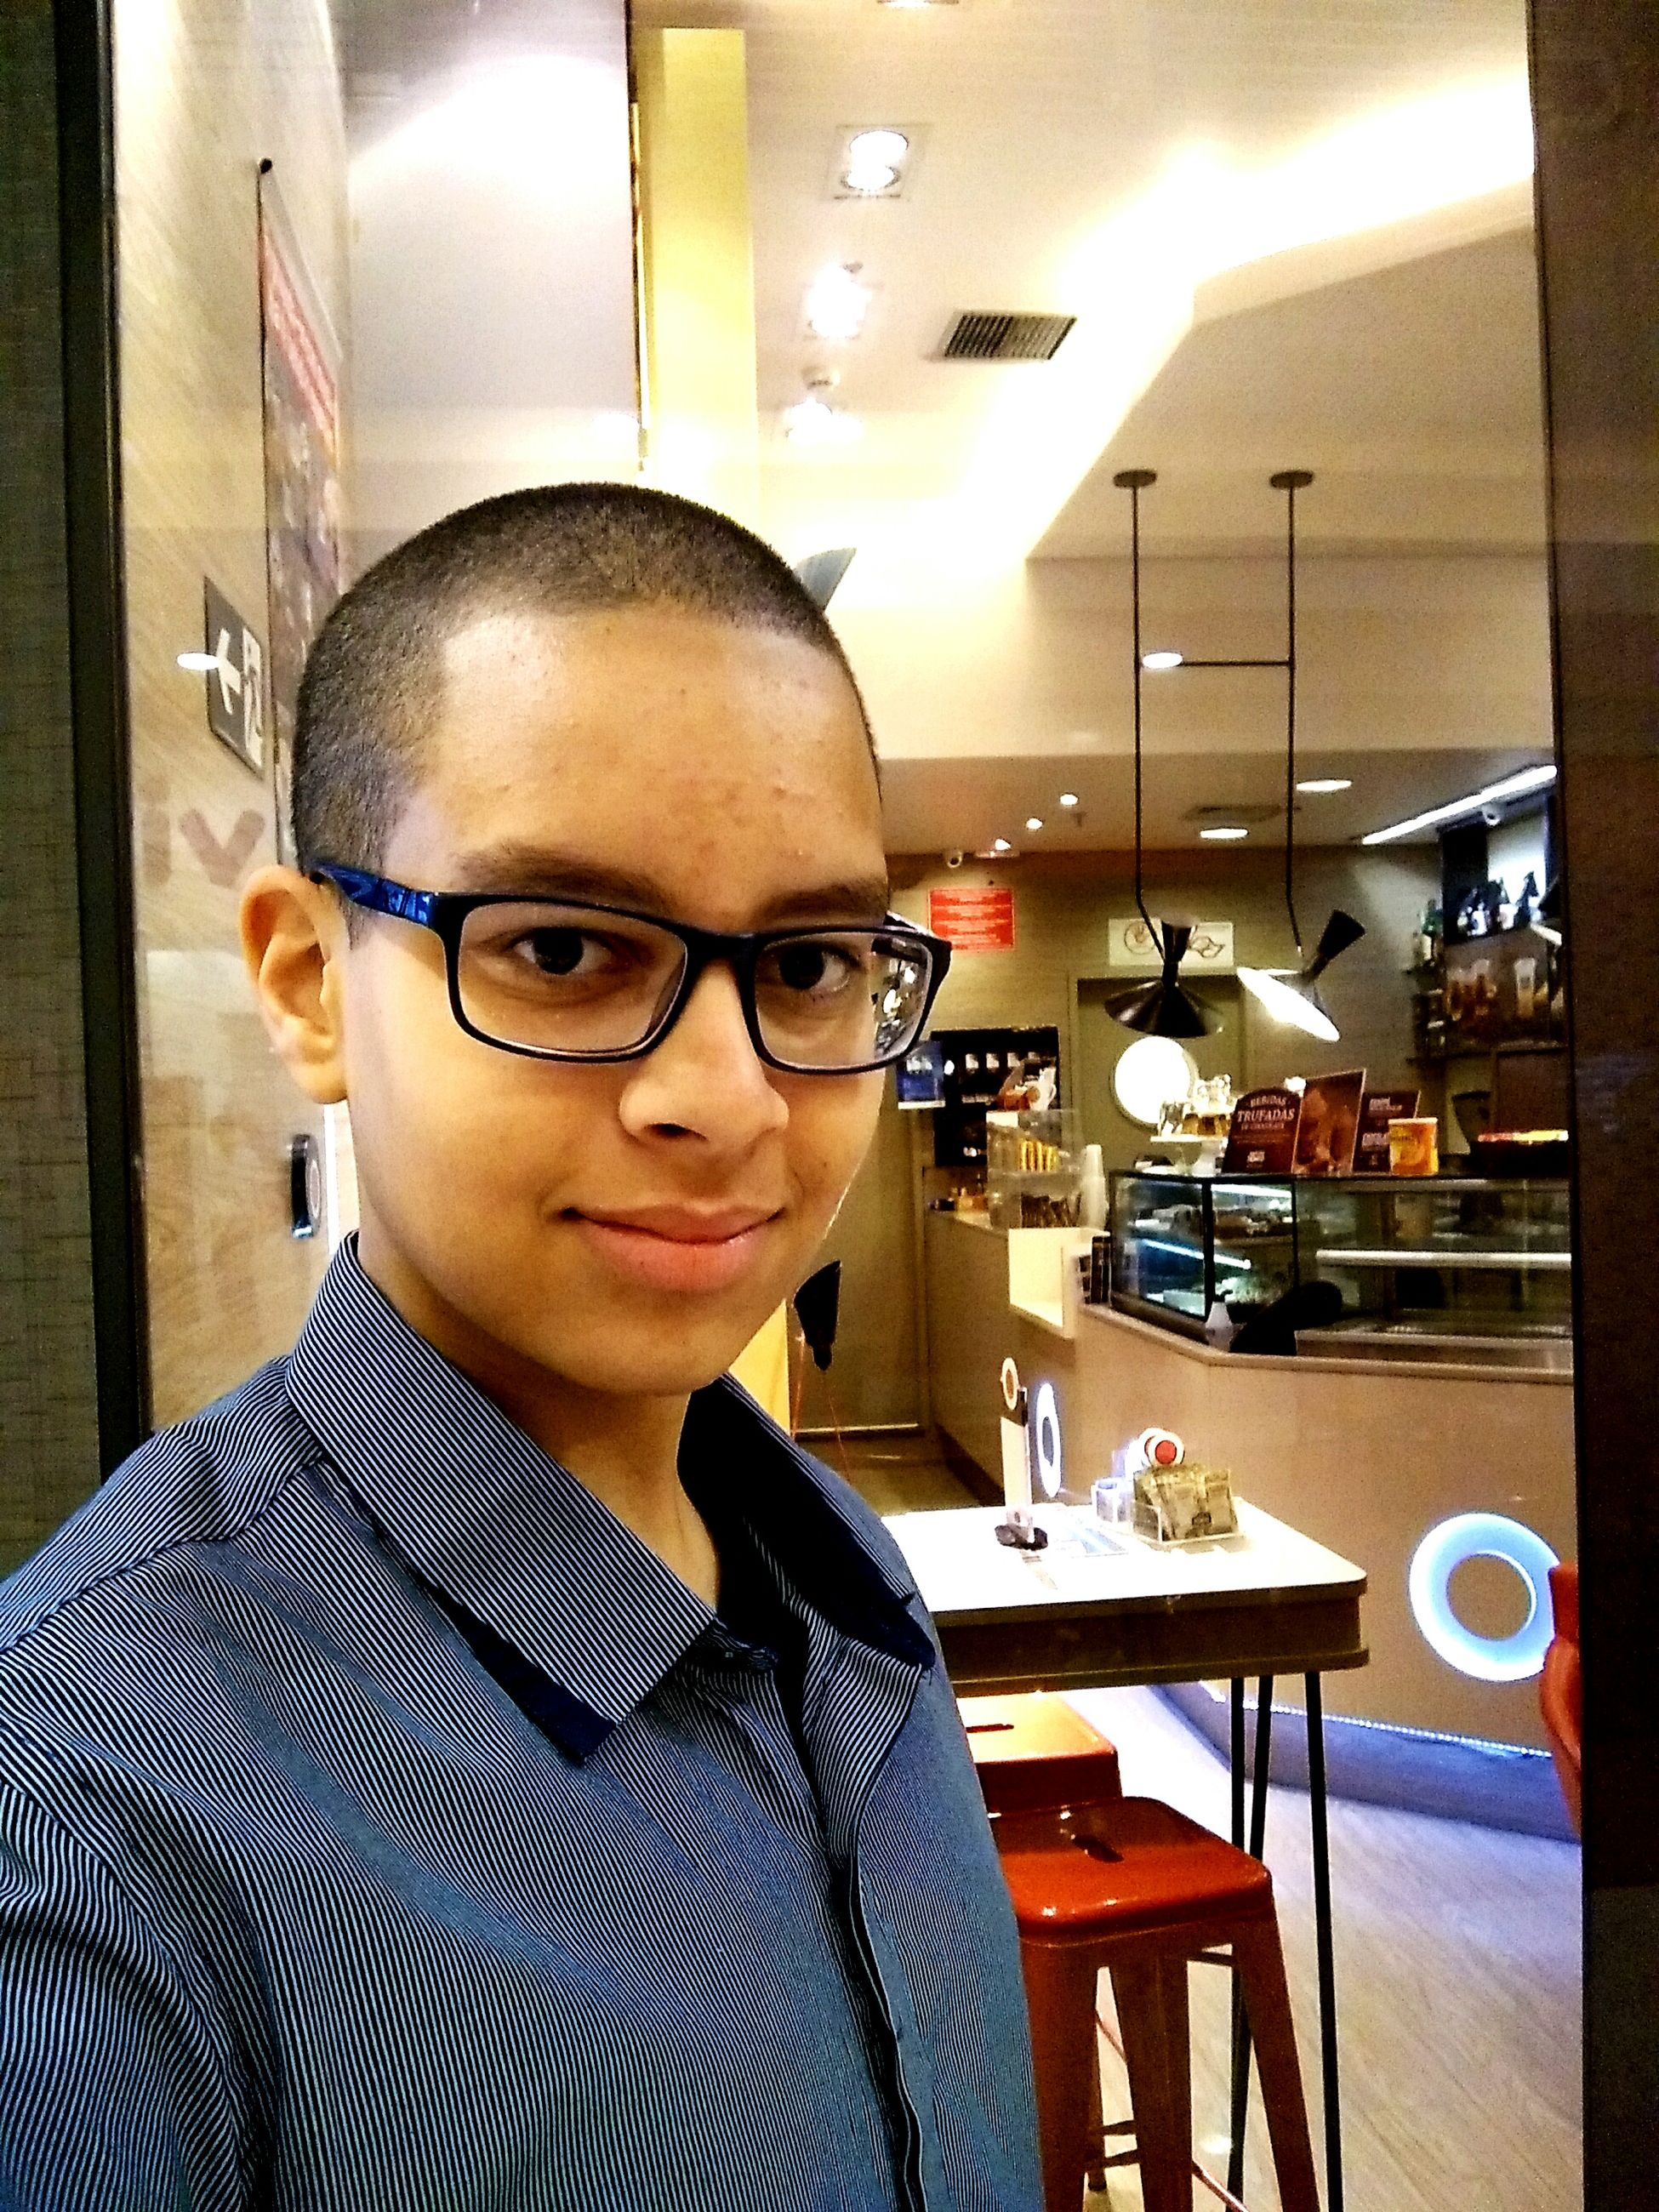 indoors, restaurant, real people, looking at camera, portrait, one person, young adult, front view, eyeglasses, table, cafe, lifestyles, headshot, sitting, illuminated, young women, day, close-up